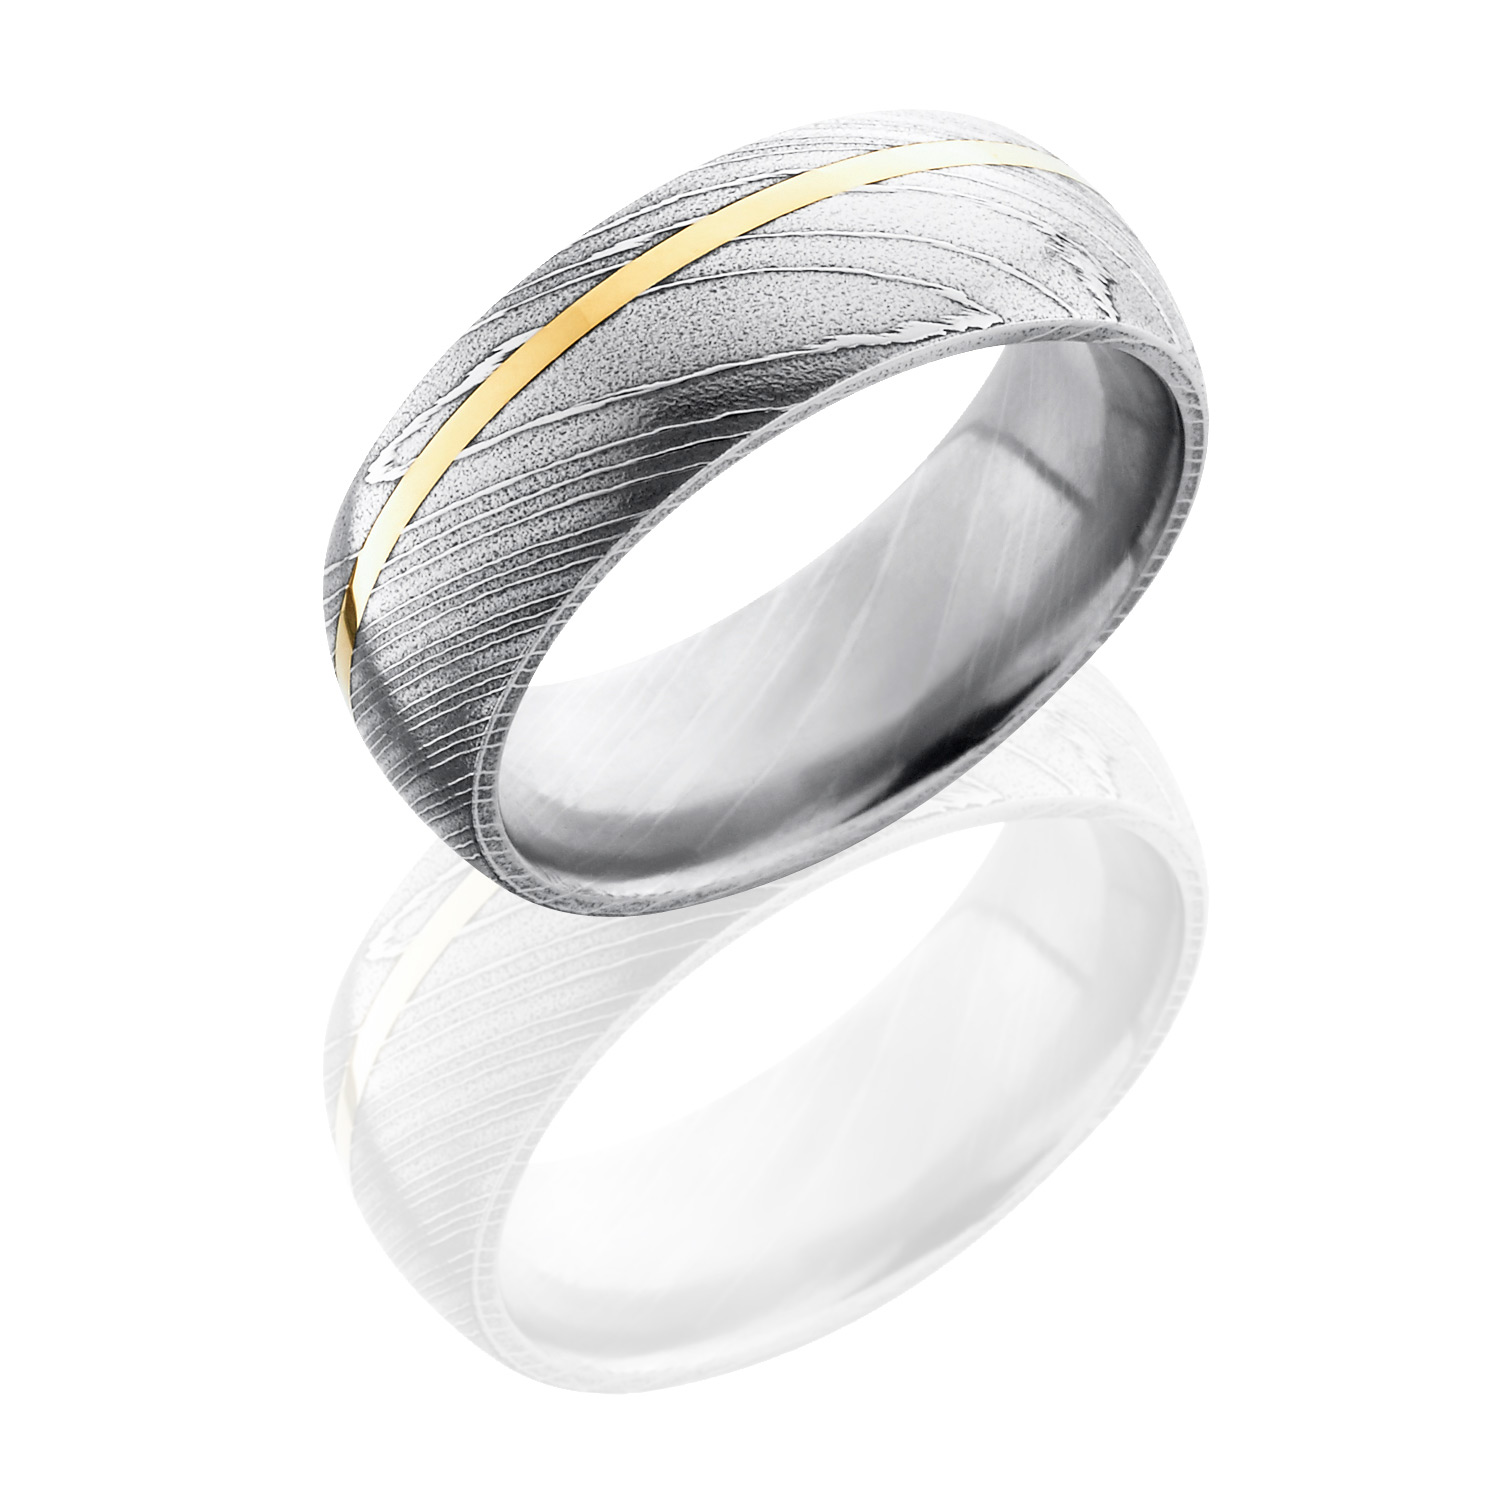 Lashbrook D8D11OC14KY SATINACID Damascus Steel Wedding Ring or